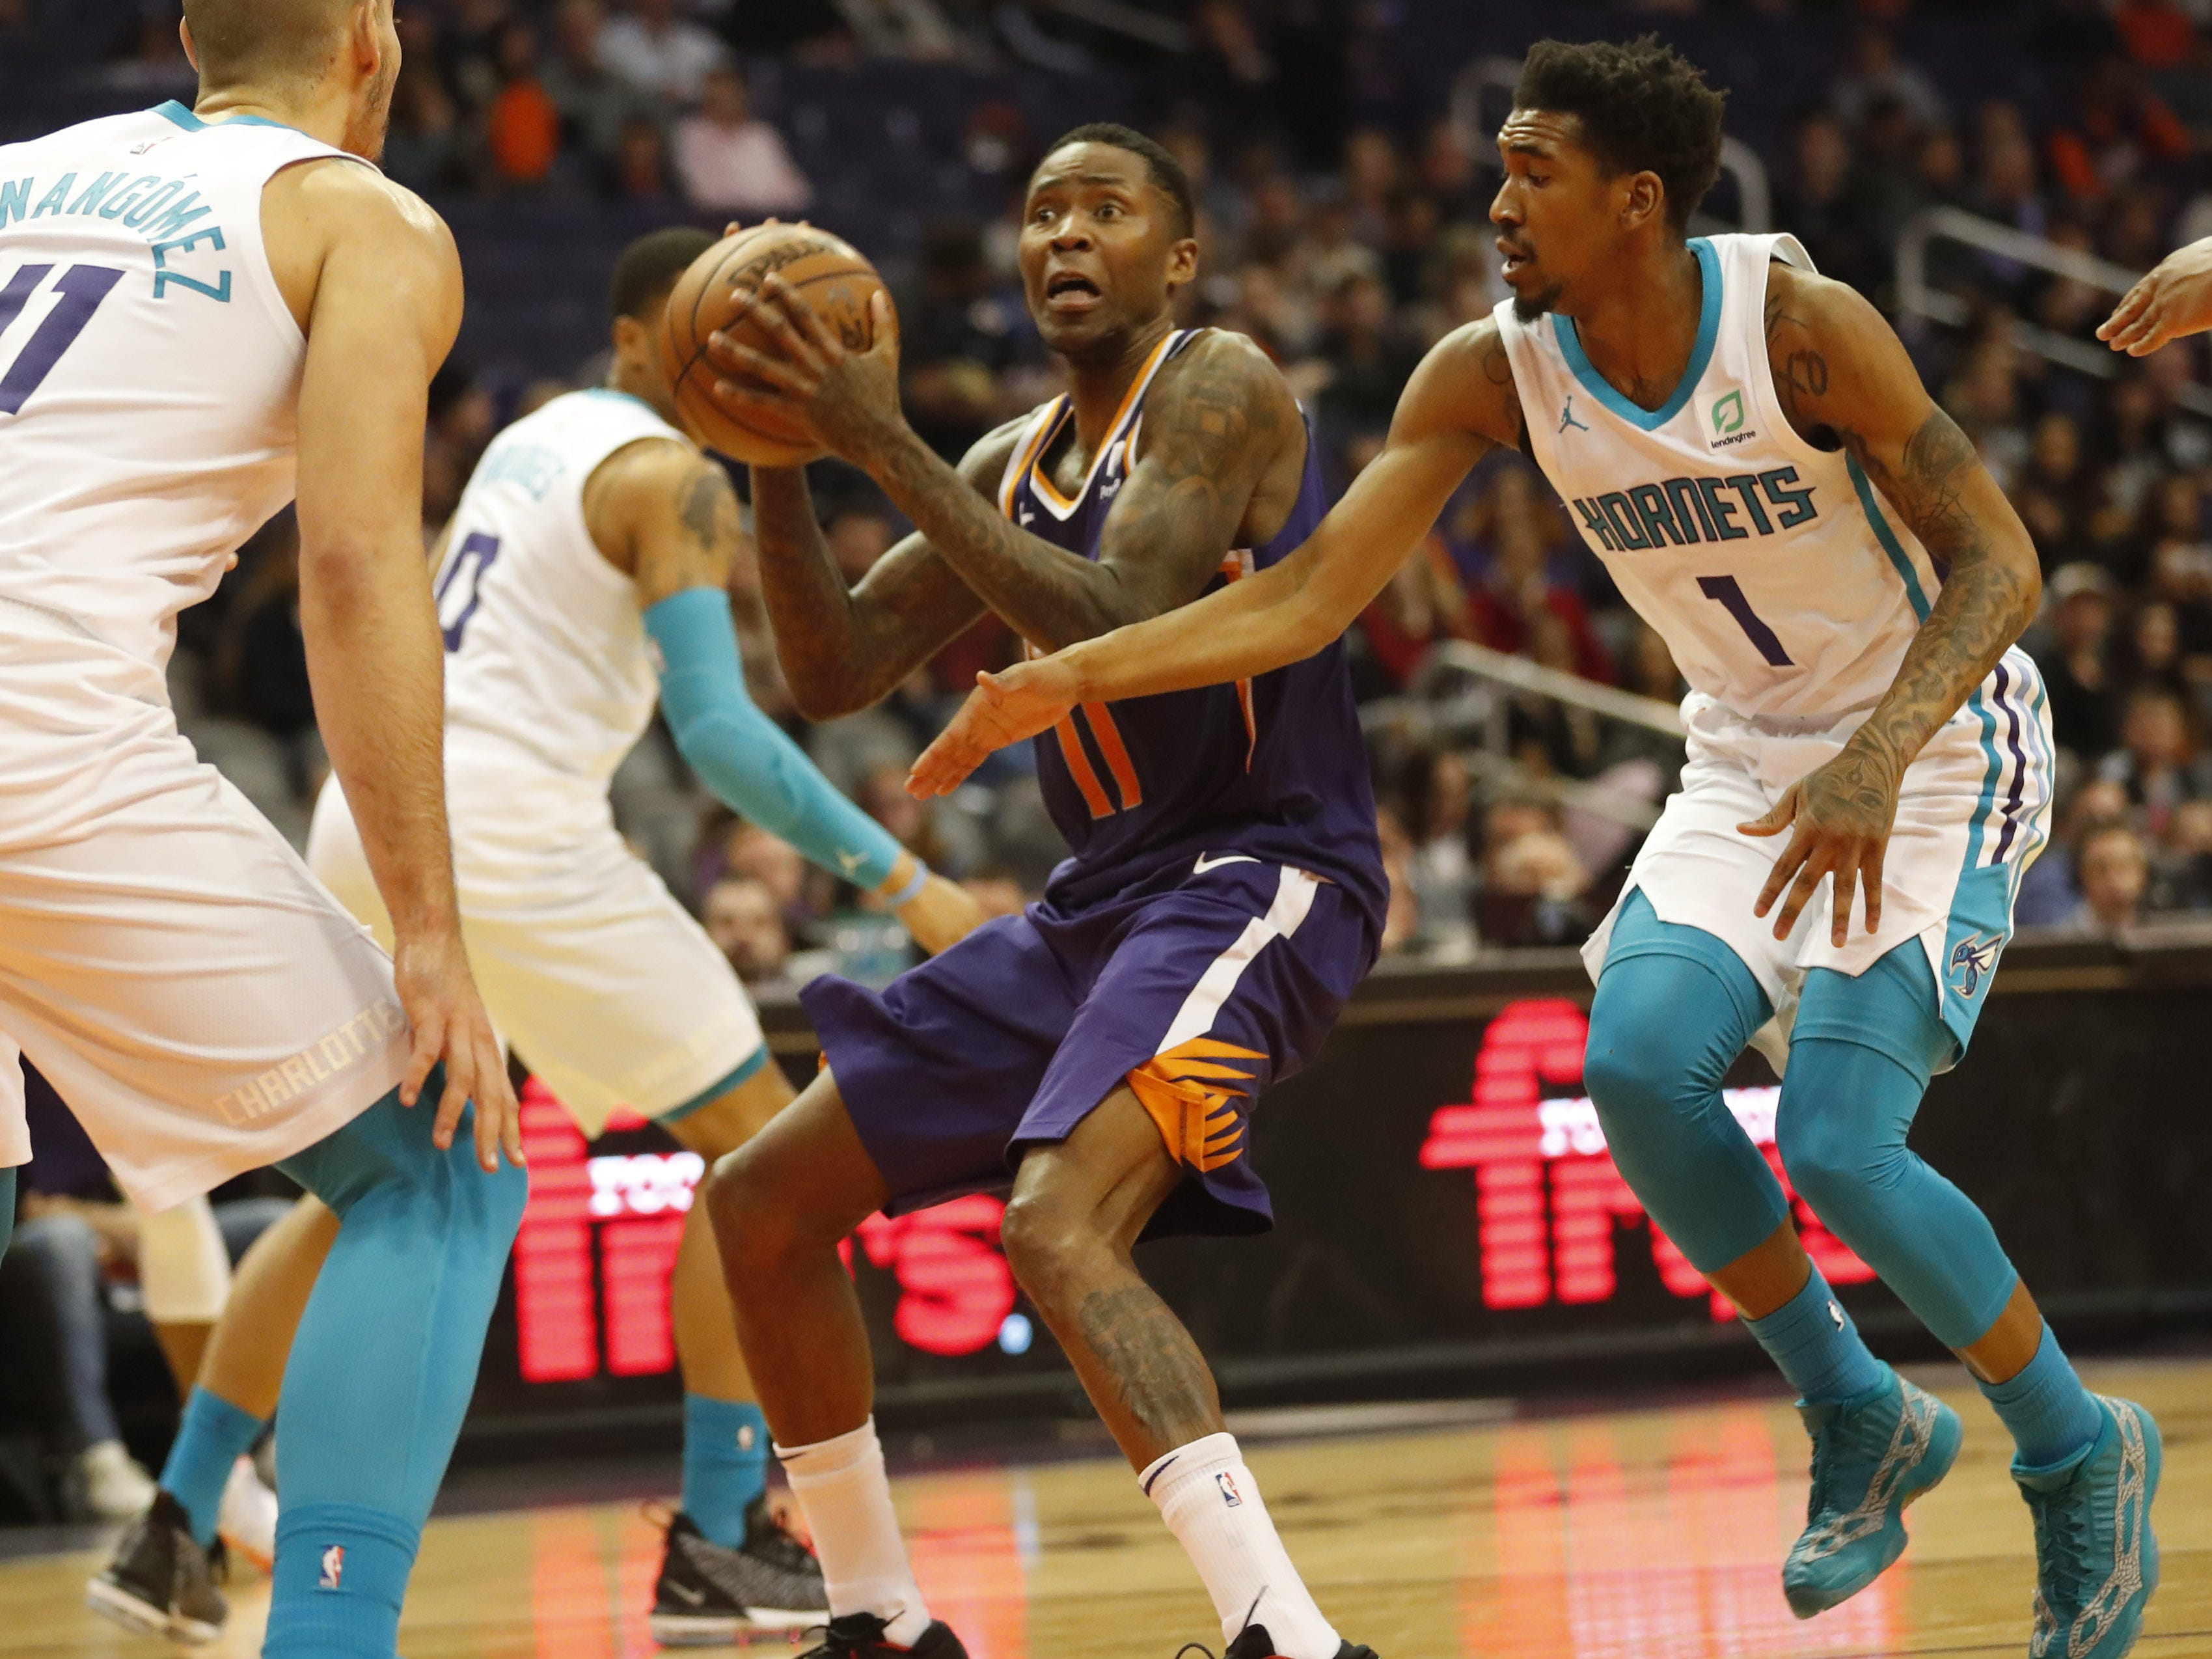 Phoenix Suns guard Jamal Crawford (11) shields the ball from Charlotte Hornets guard Malik Monk (1) during the second quarter in Phoenix January 6, 2019.